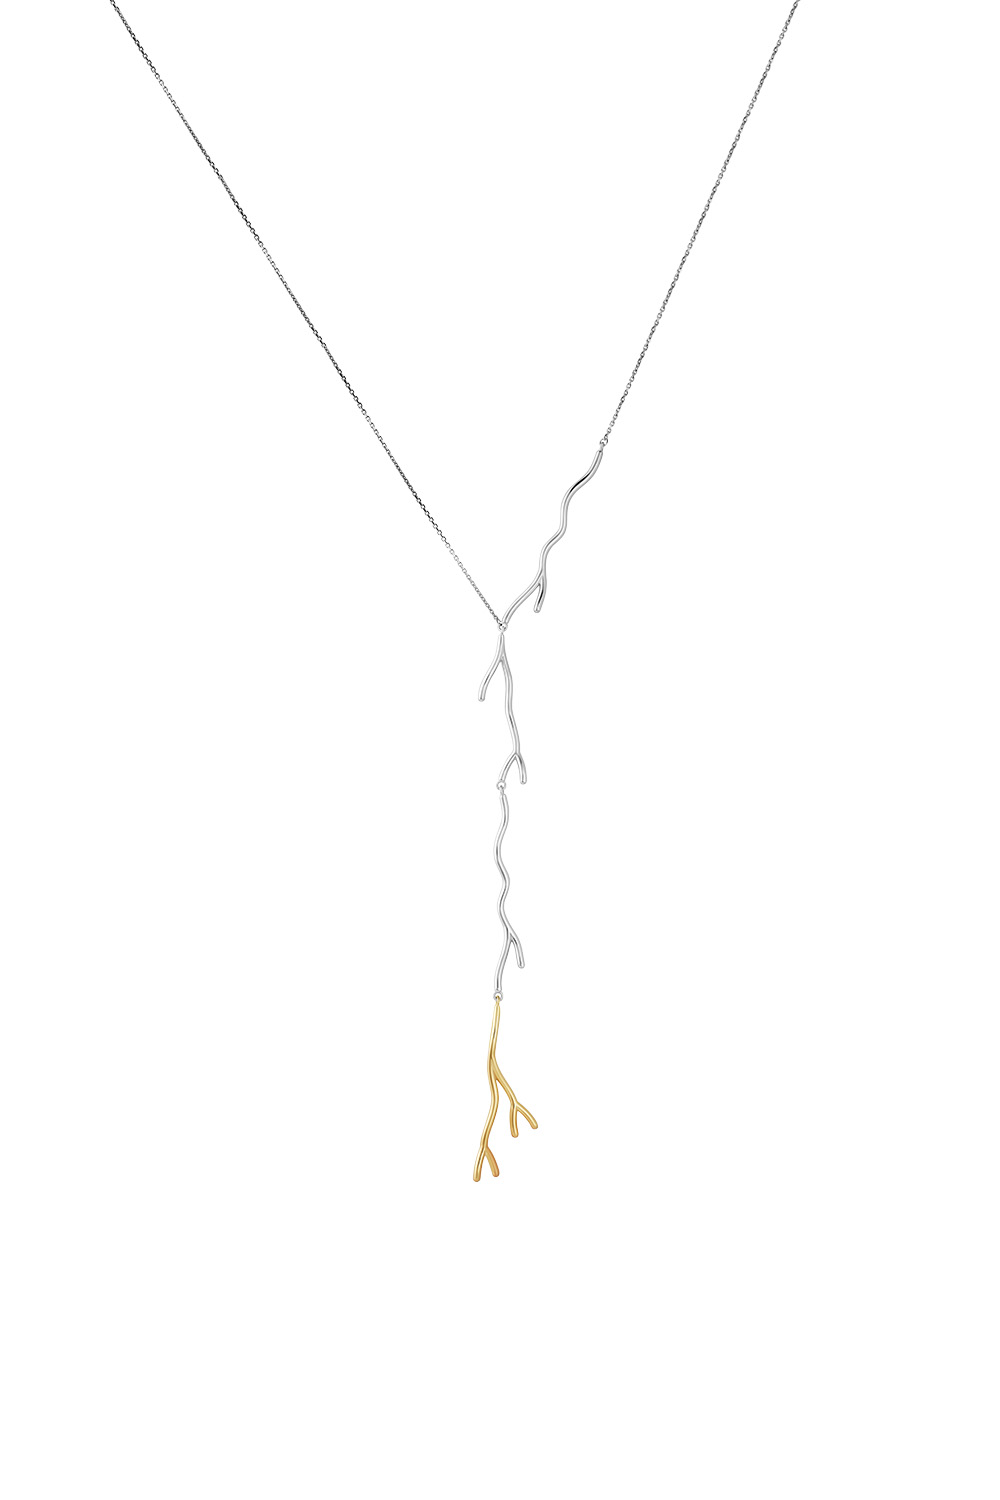 Koral Golden Tie Necklace